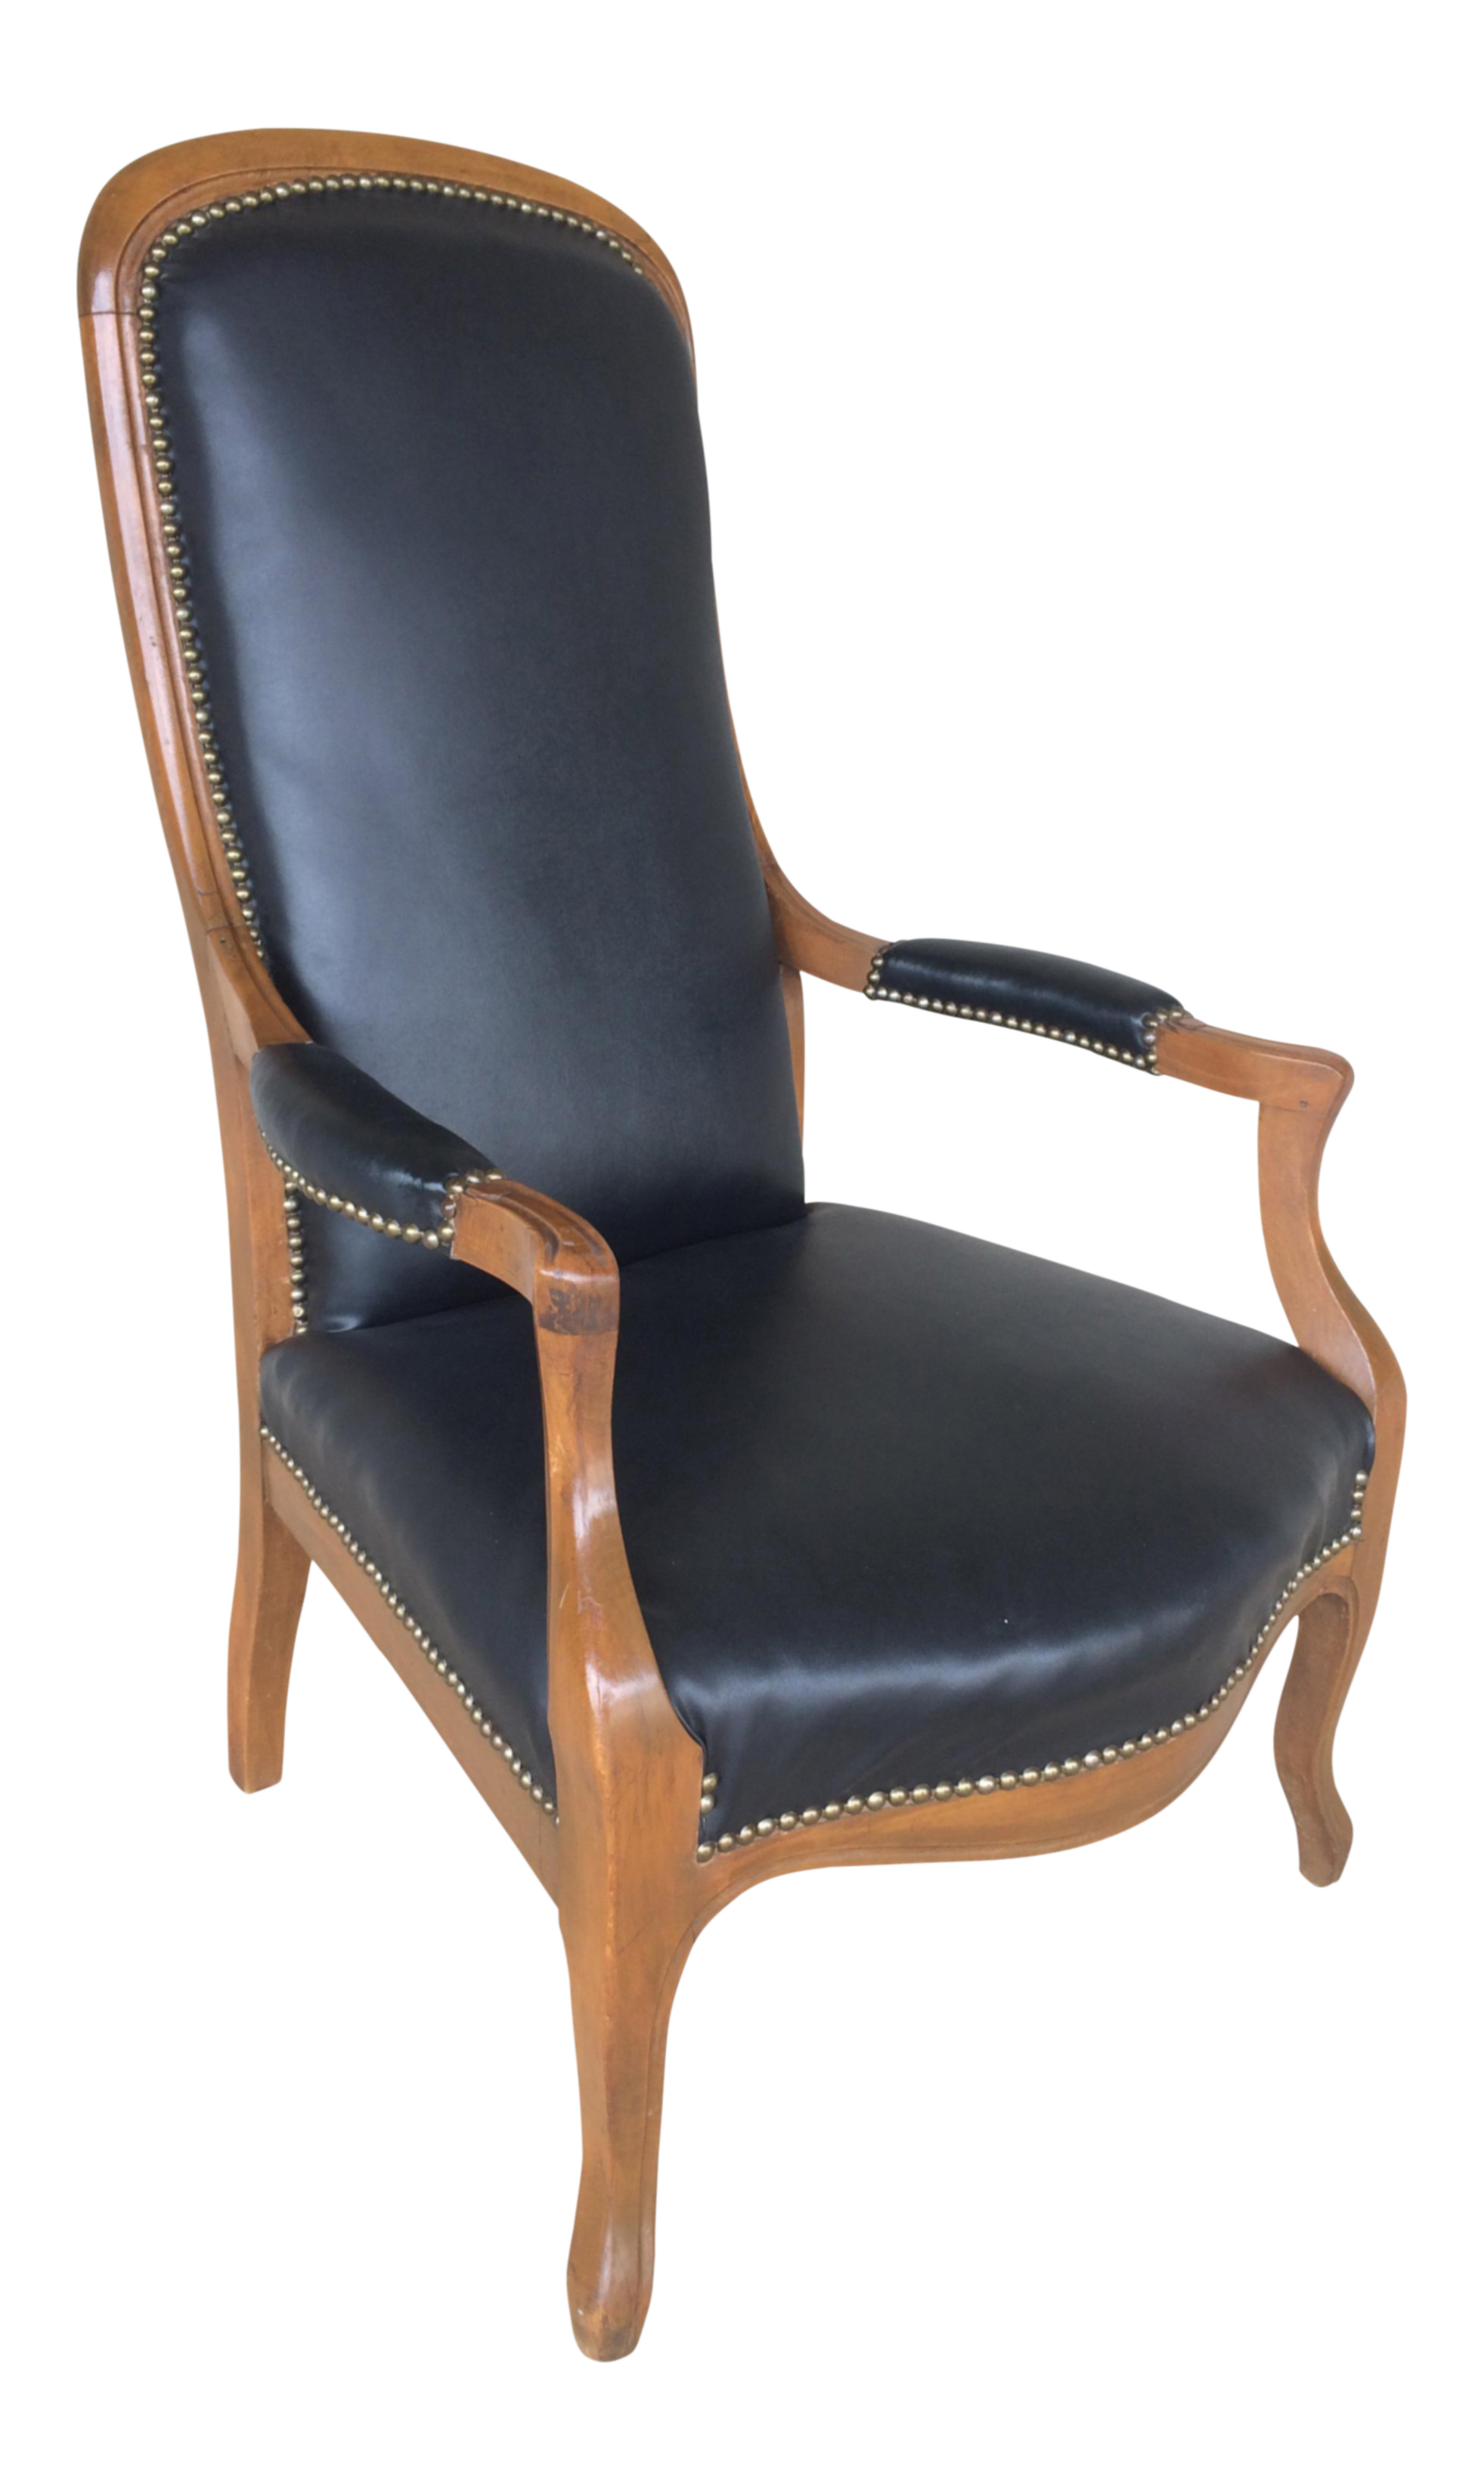 Faux Leather High Back Arm Chair | Chairish